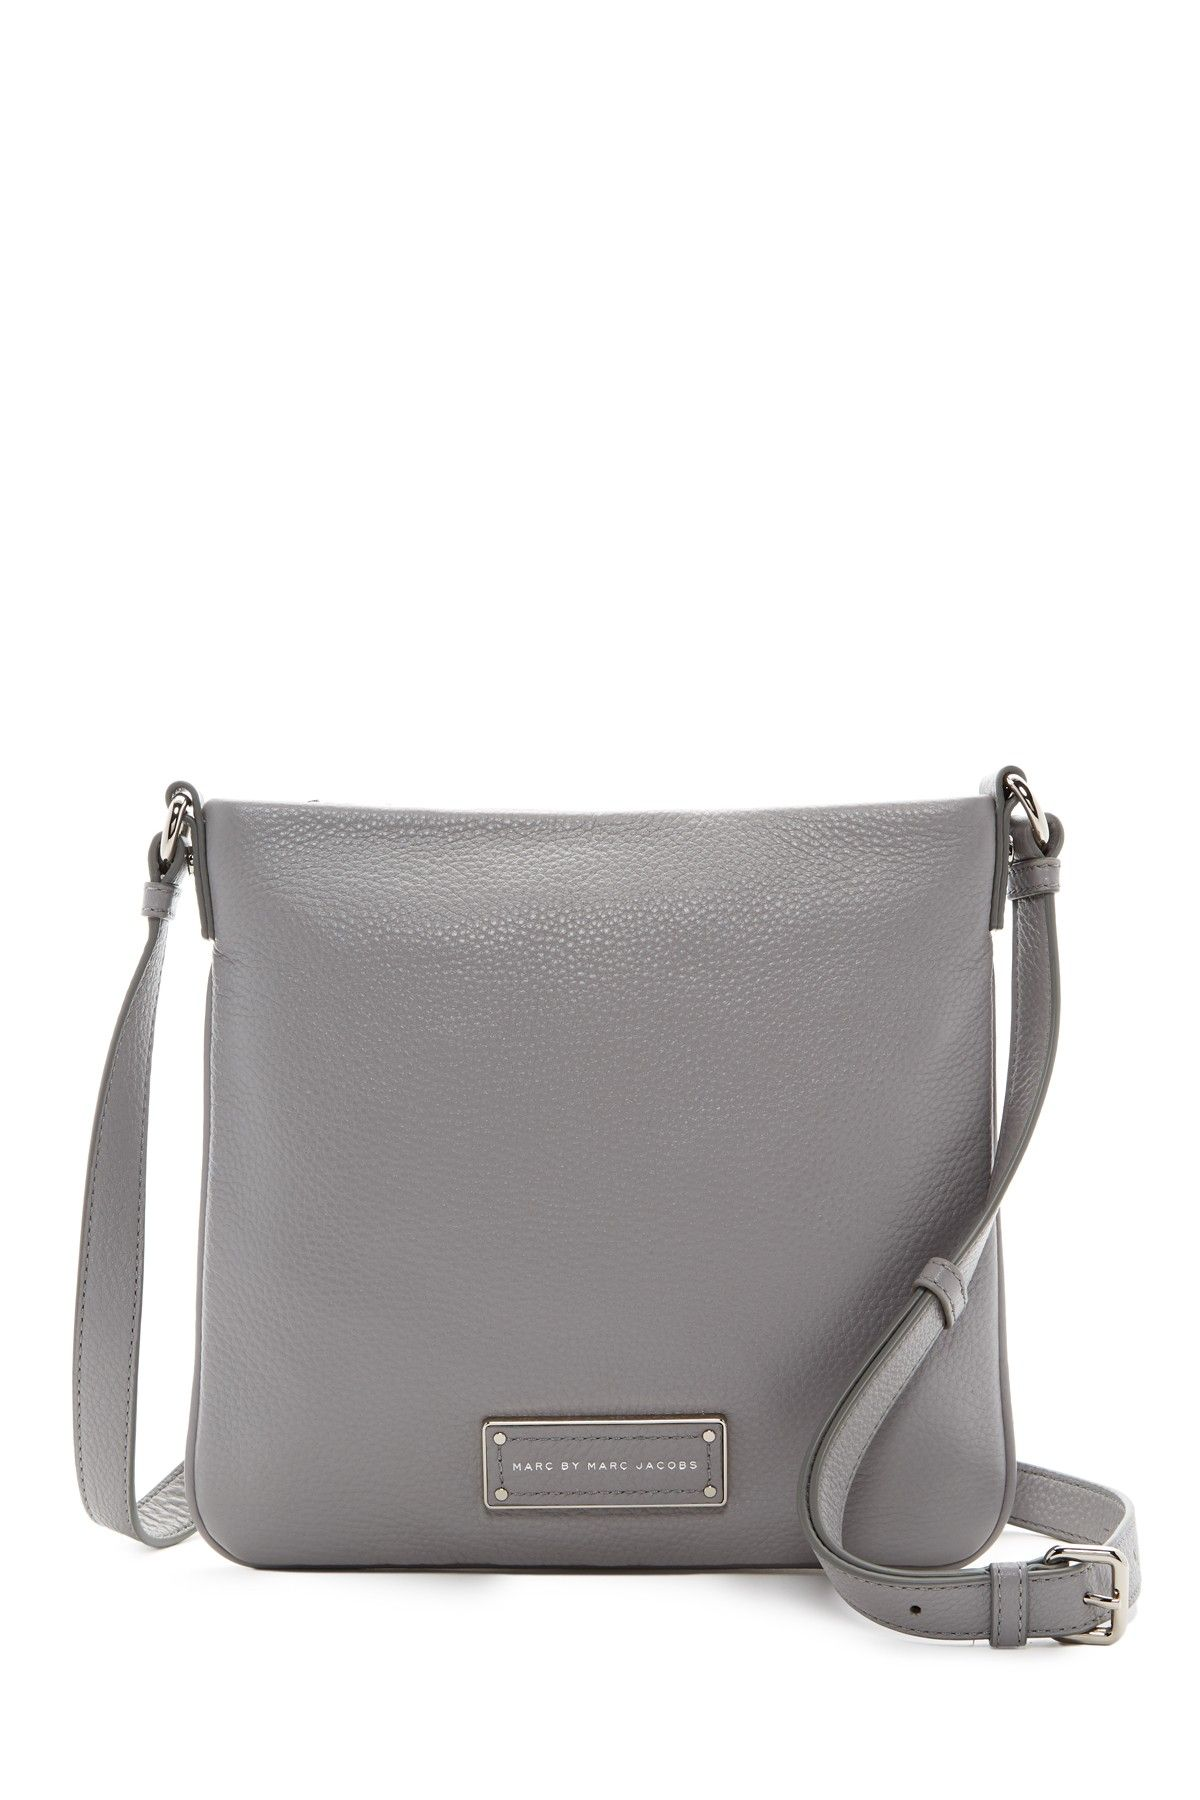 b94cb39416d1b Sia Leather Crossbody by Marc by Marc Jacobs on  nordstrom rack